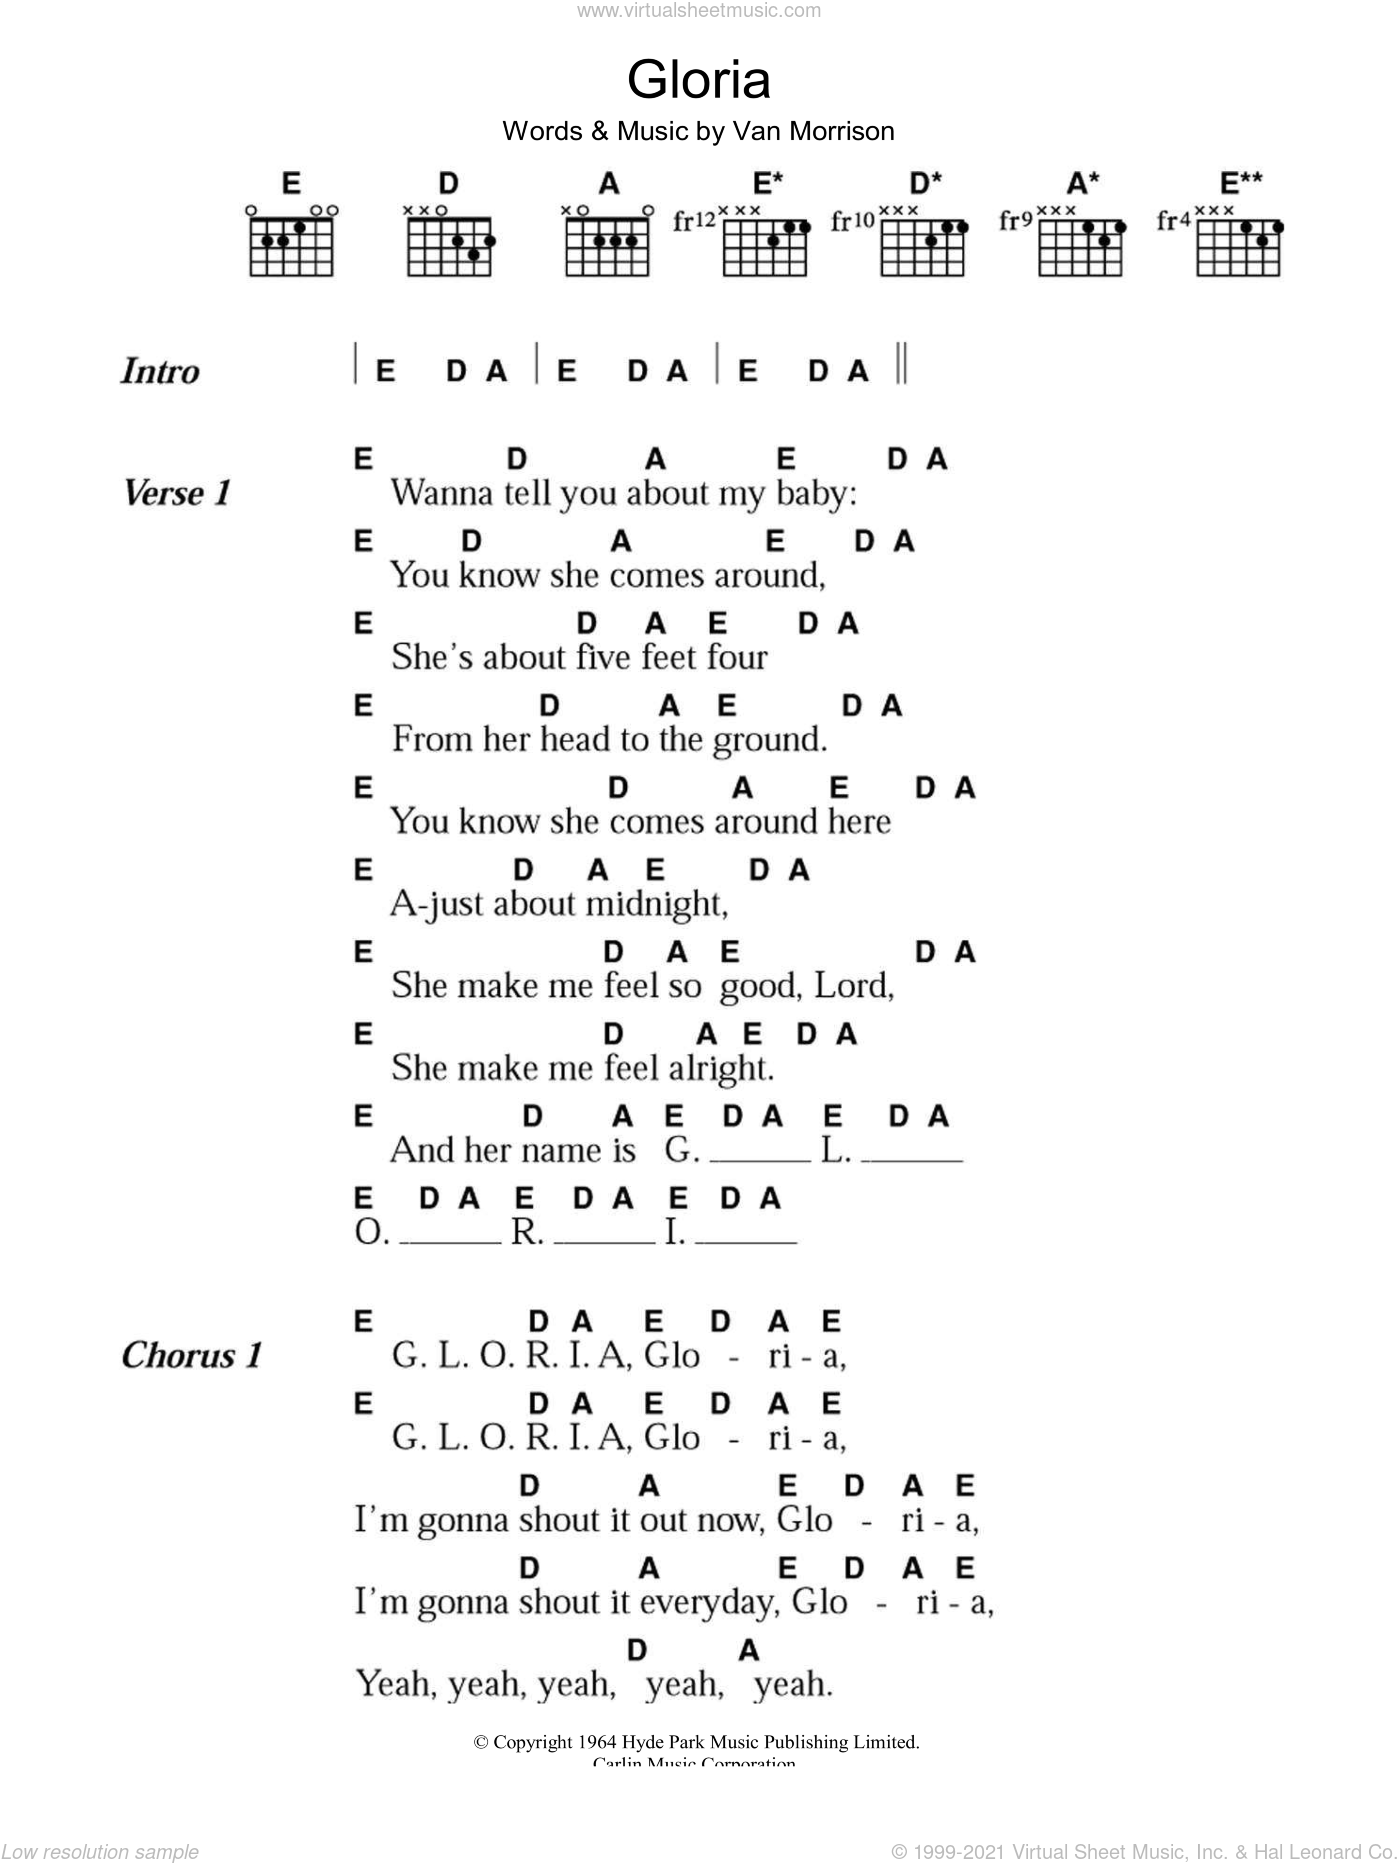 Gloria sheet music for guitar (chords) by Van Morrison. Score Image Preview.